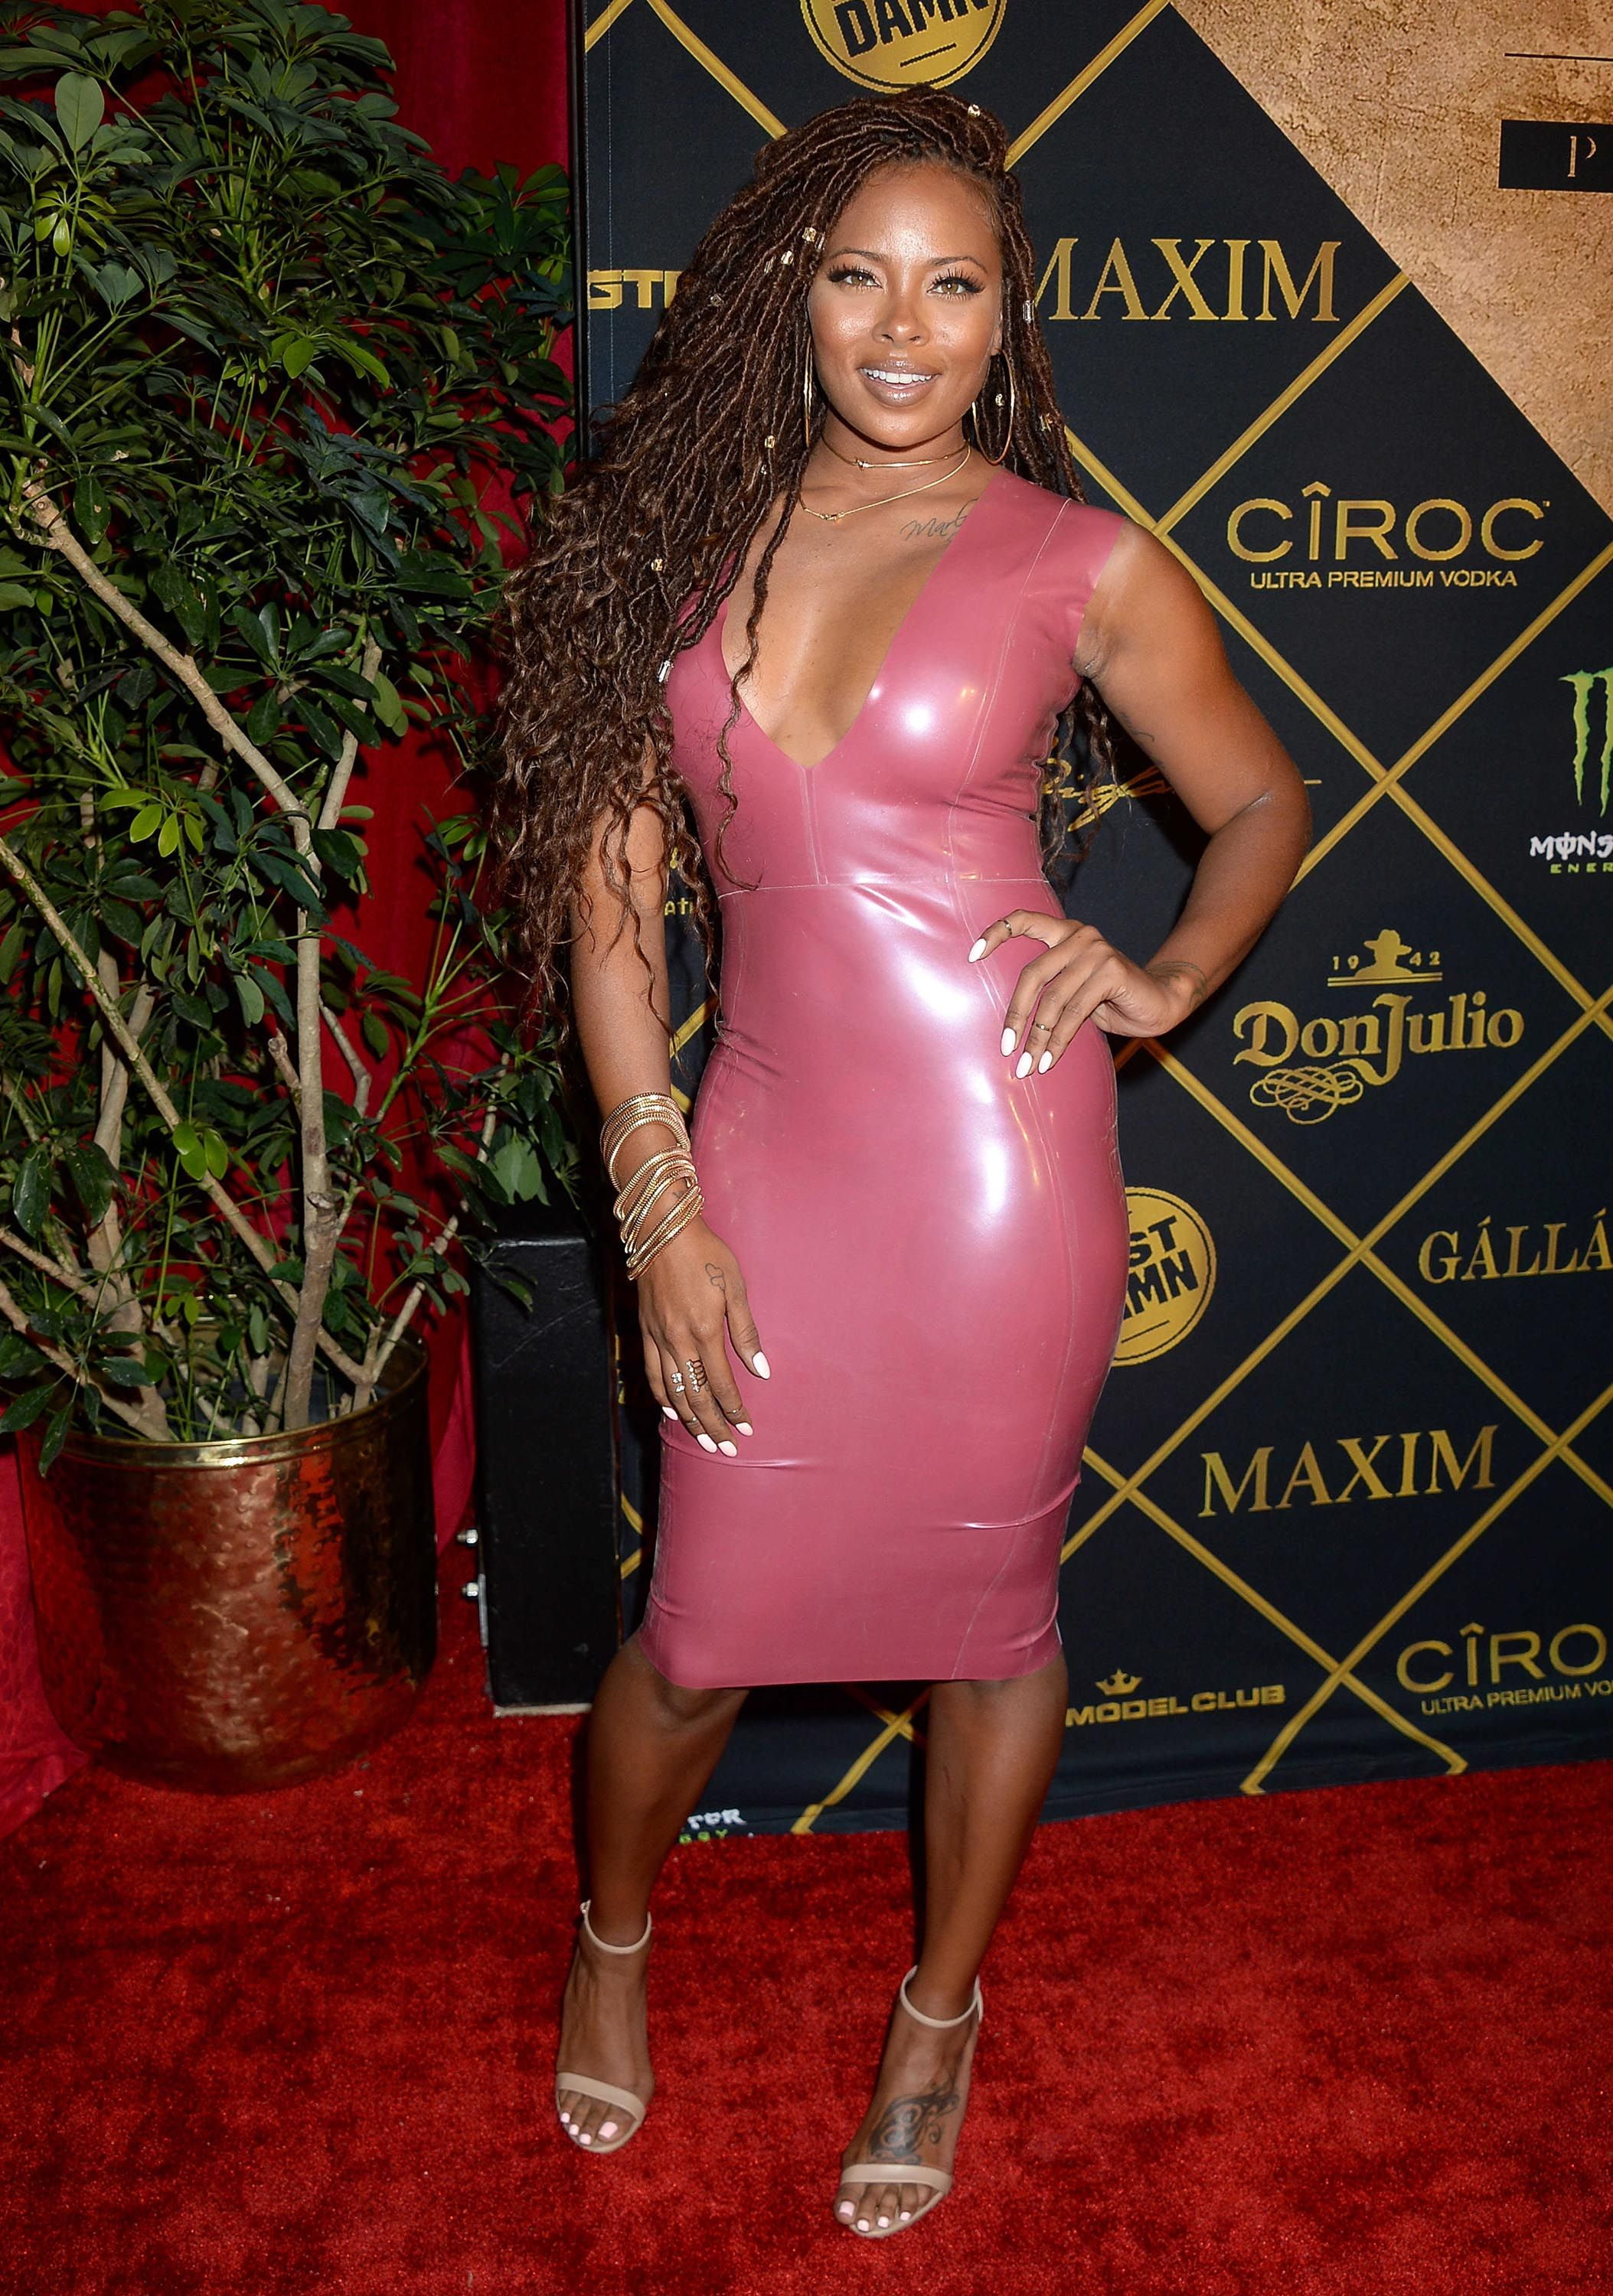 Eva Marcille Nip Slip - 7 Photos nude (33 photo), Fappening Celebrity photo